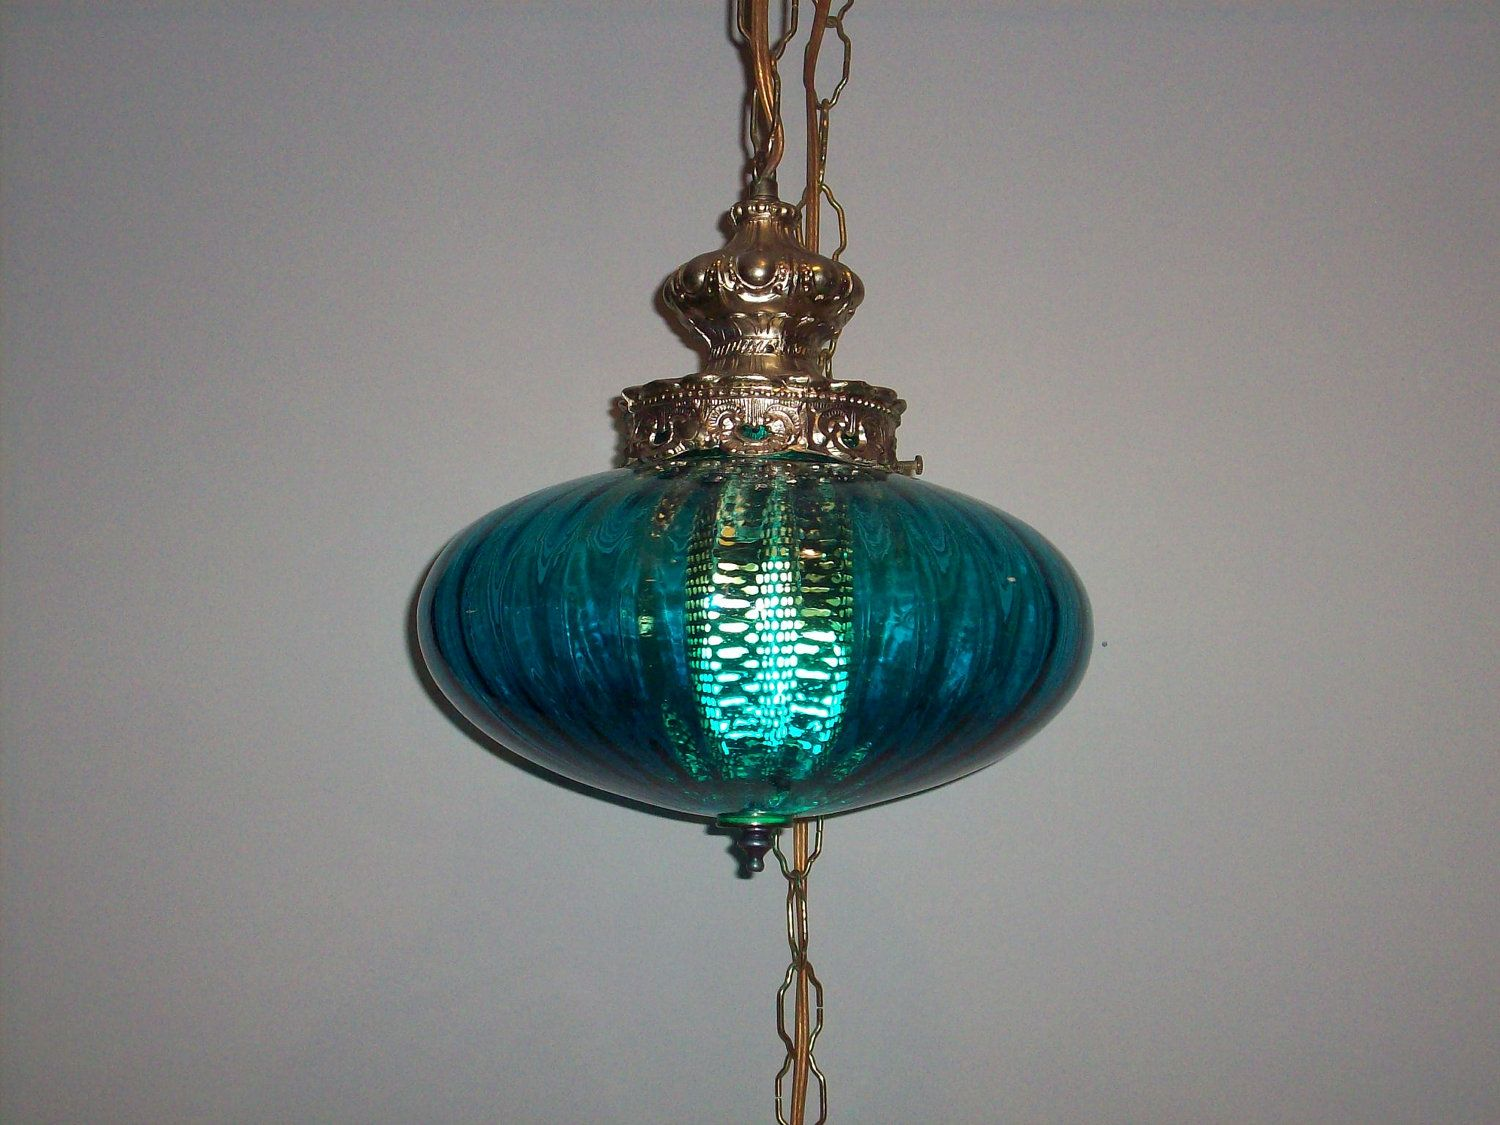 Vintage Blue Turquoise 1960u0027s Swag Light. $195.00 via Etsy. & Vintage Blue Turquoise 1960u0027s Swag Light. $195.00 via Etsy. | For ... azcodes.com